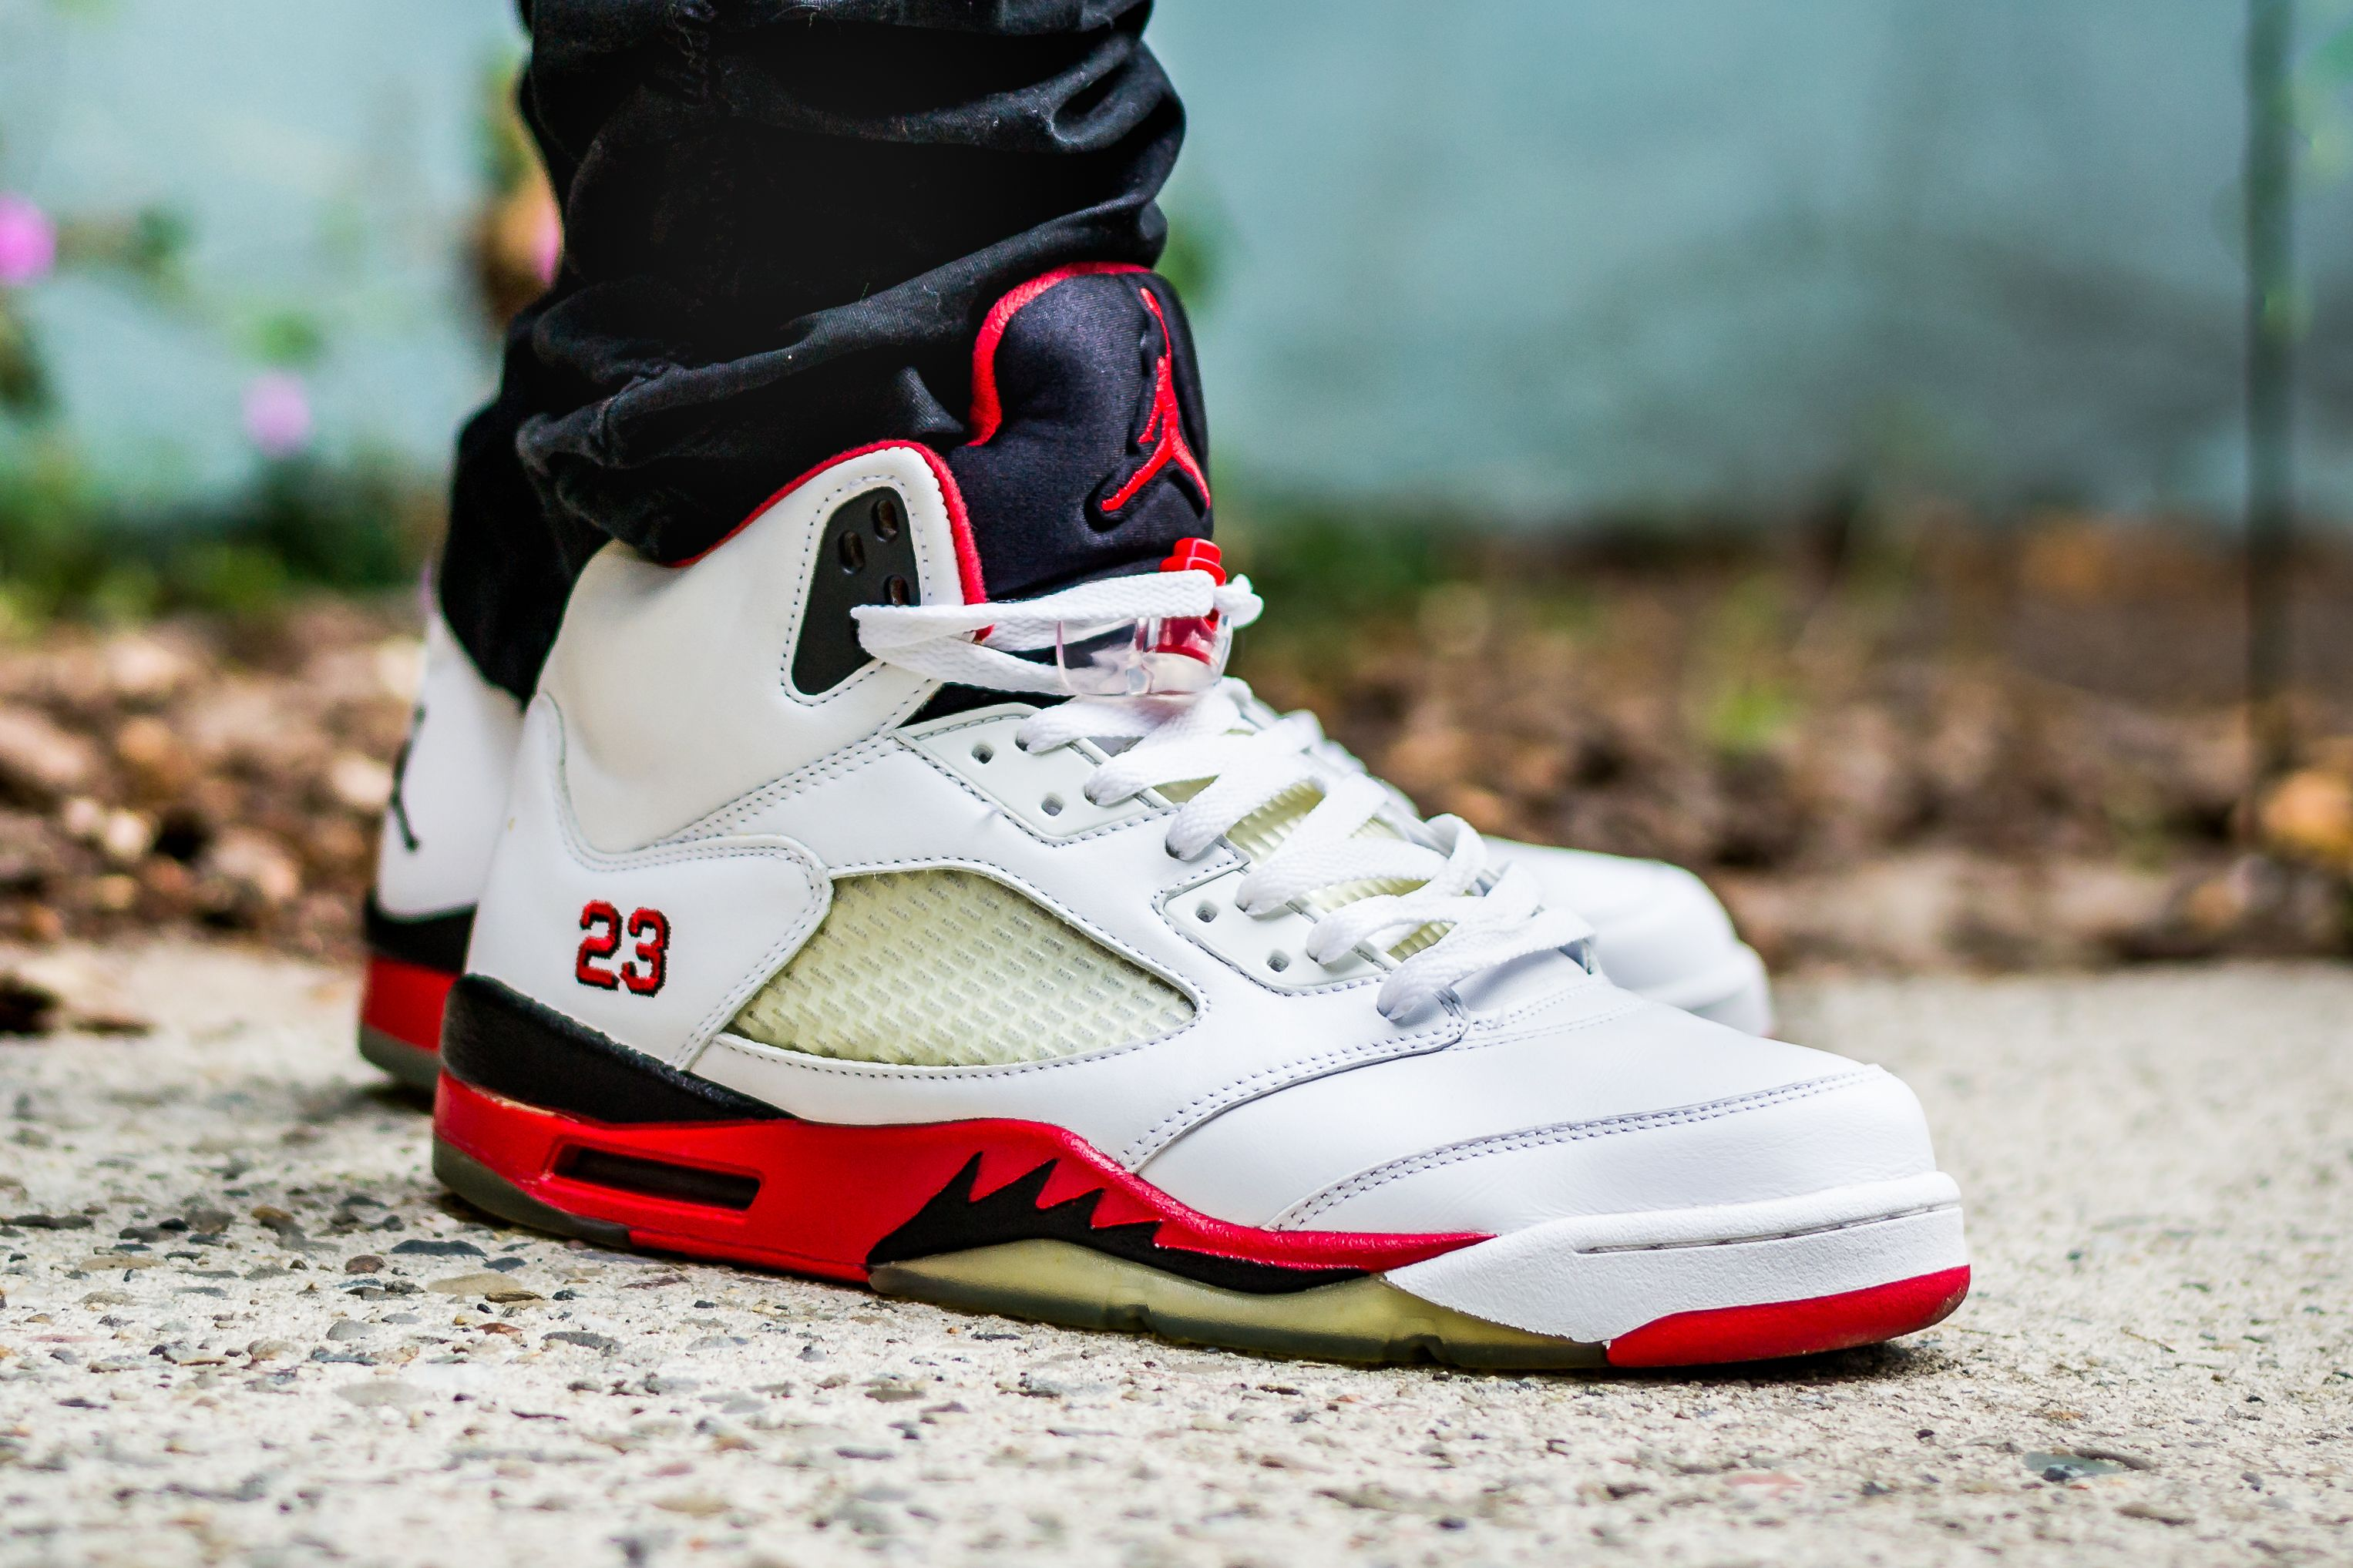 newest 1326d a0d6d new zealand jordan retro 5 low a209a f37d2  wholesale click to see my video  review of the 2006 air jordan 5 fire red and